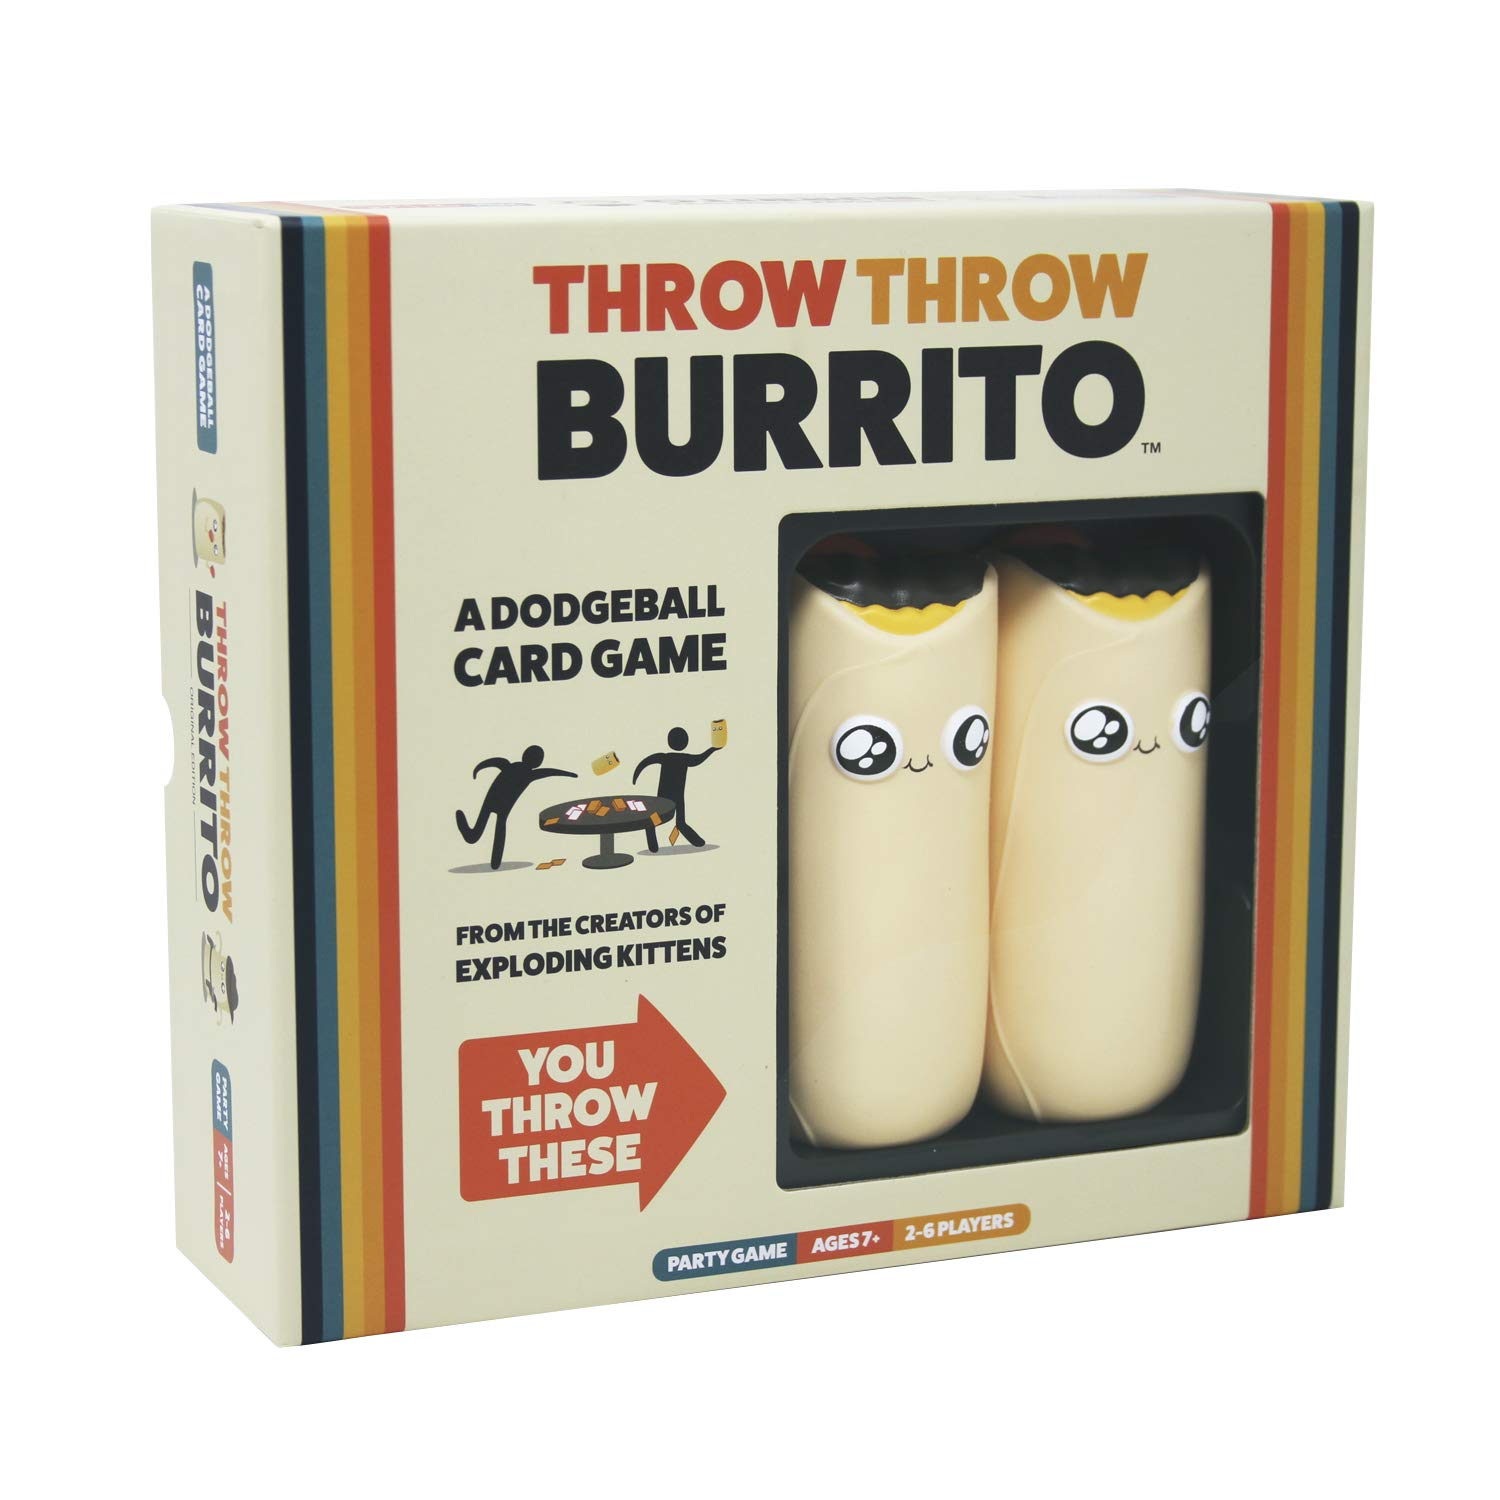 Throw Throw Burrito by Exploding Kittens - A Dodgeball Card Game - Family-Friendly Party Games - Card Games for Adults Teens & Kids